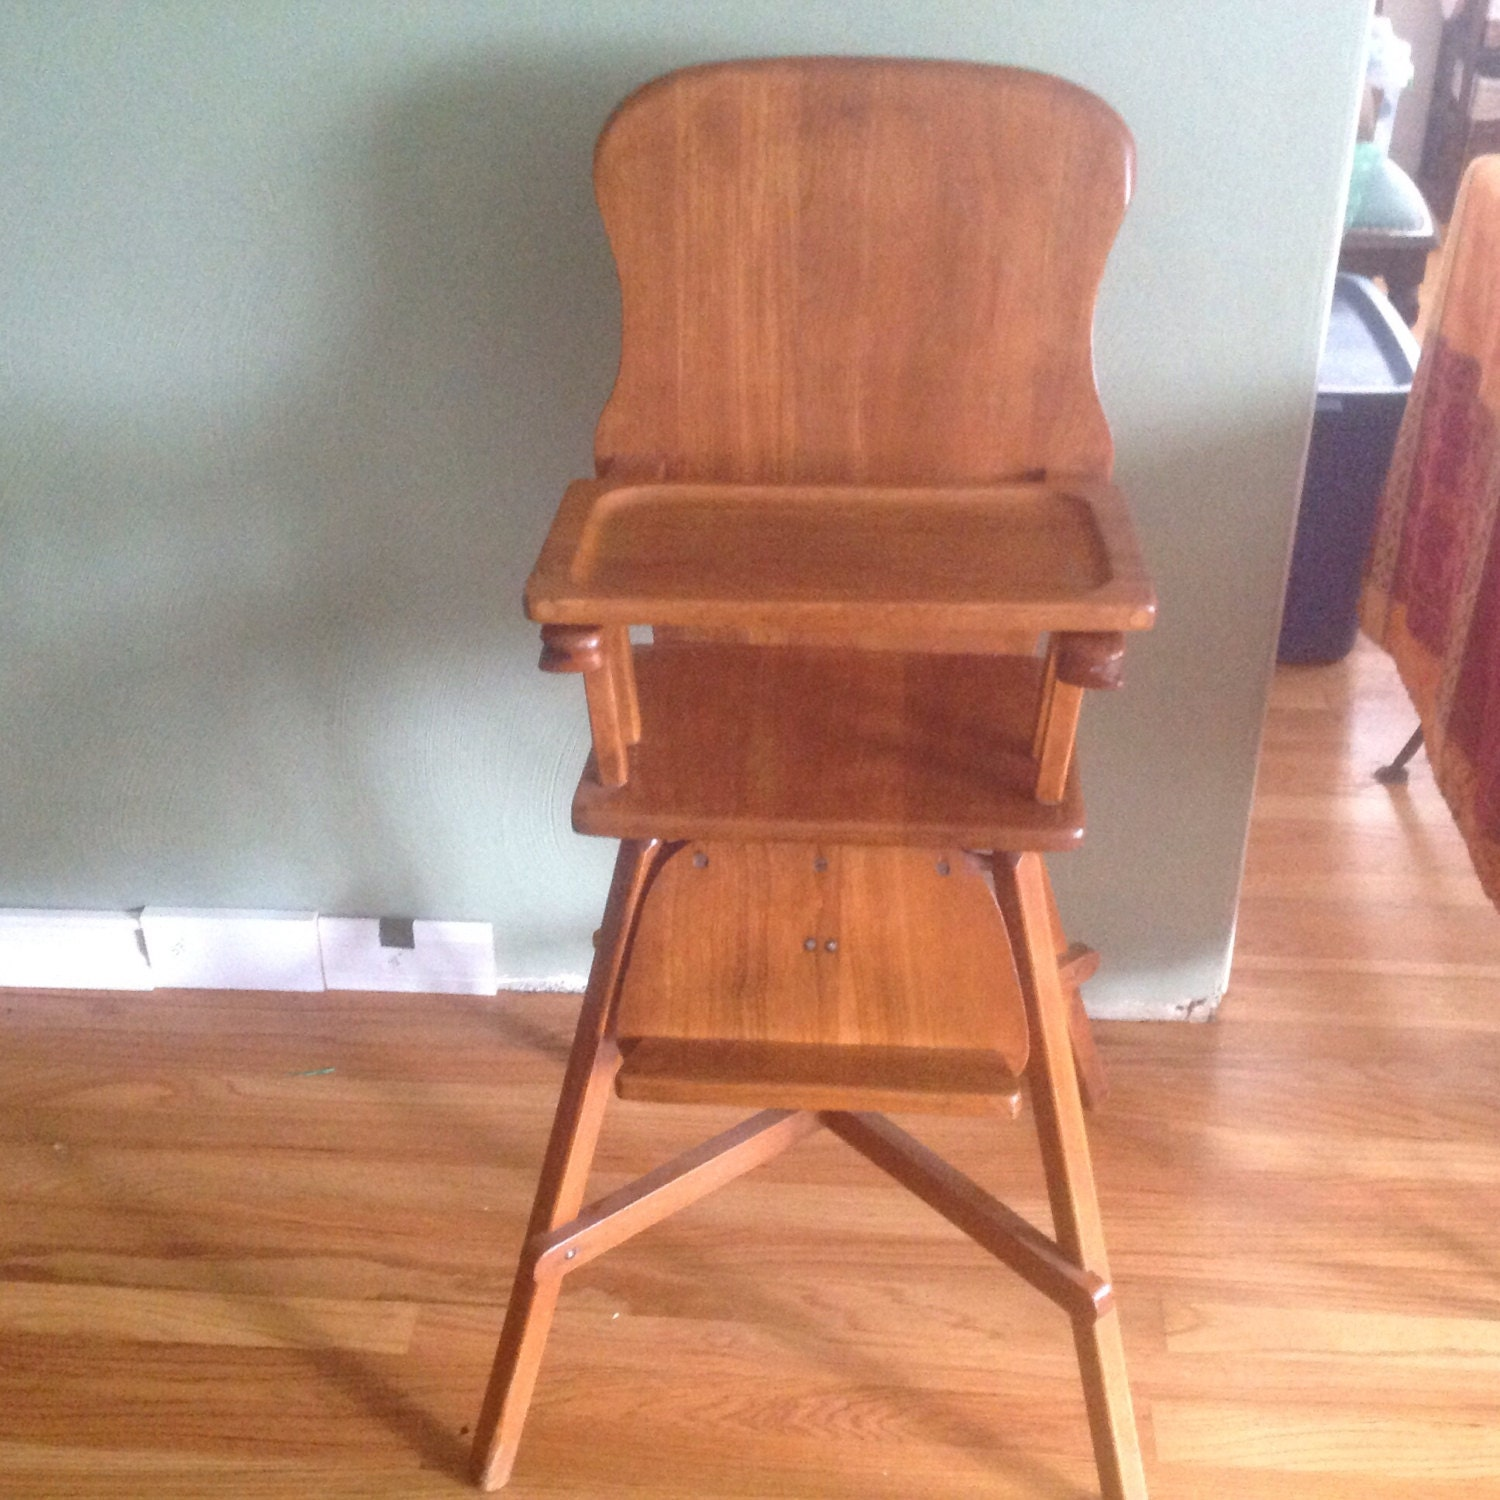 Antique Oak Maple Highchair With Tray Baby HighChair